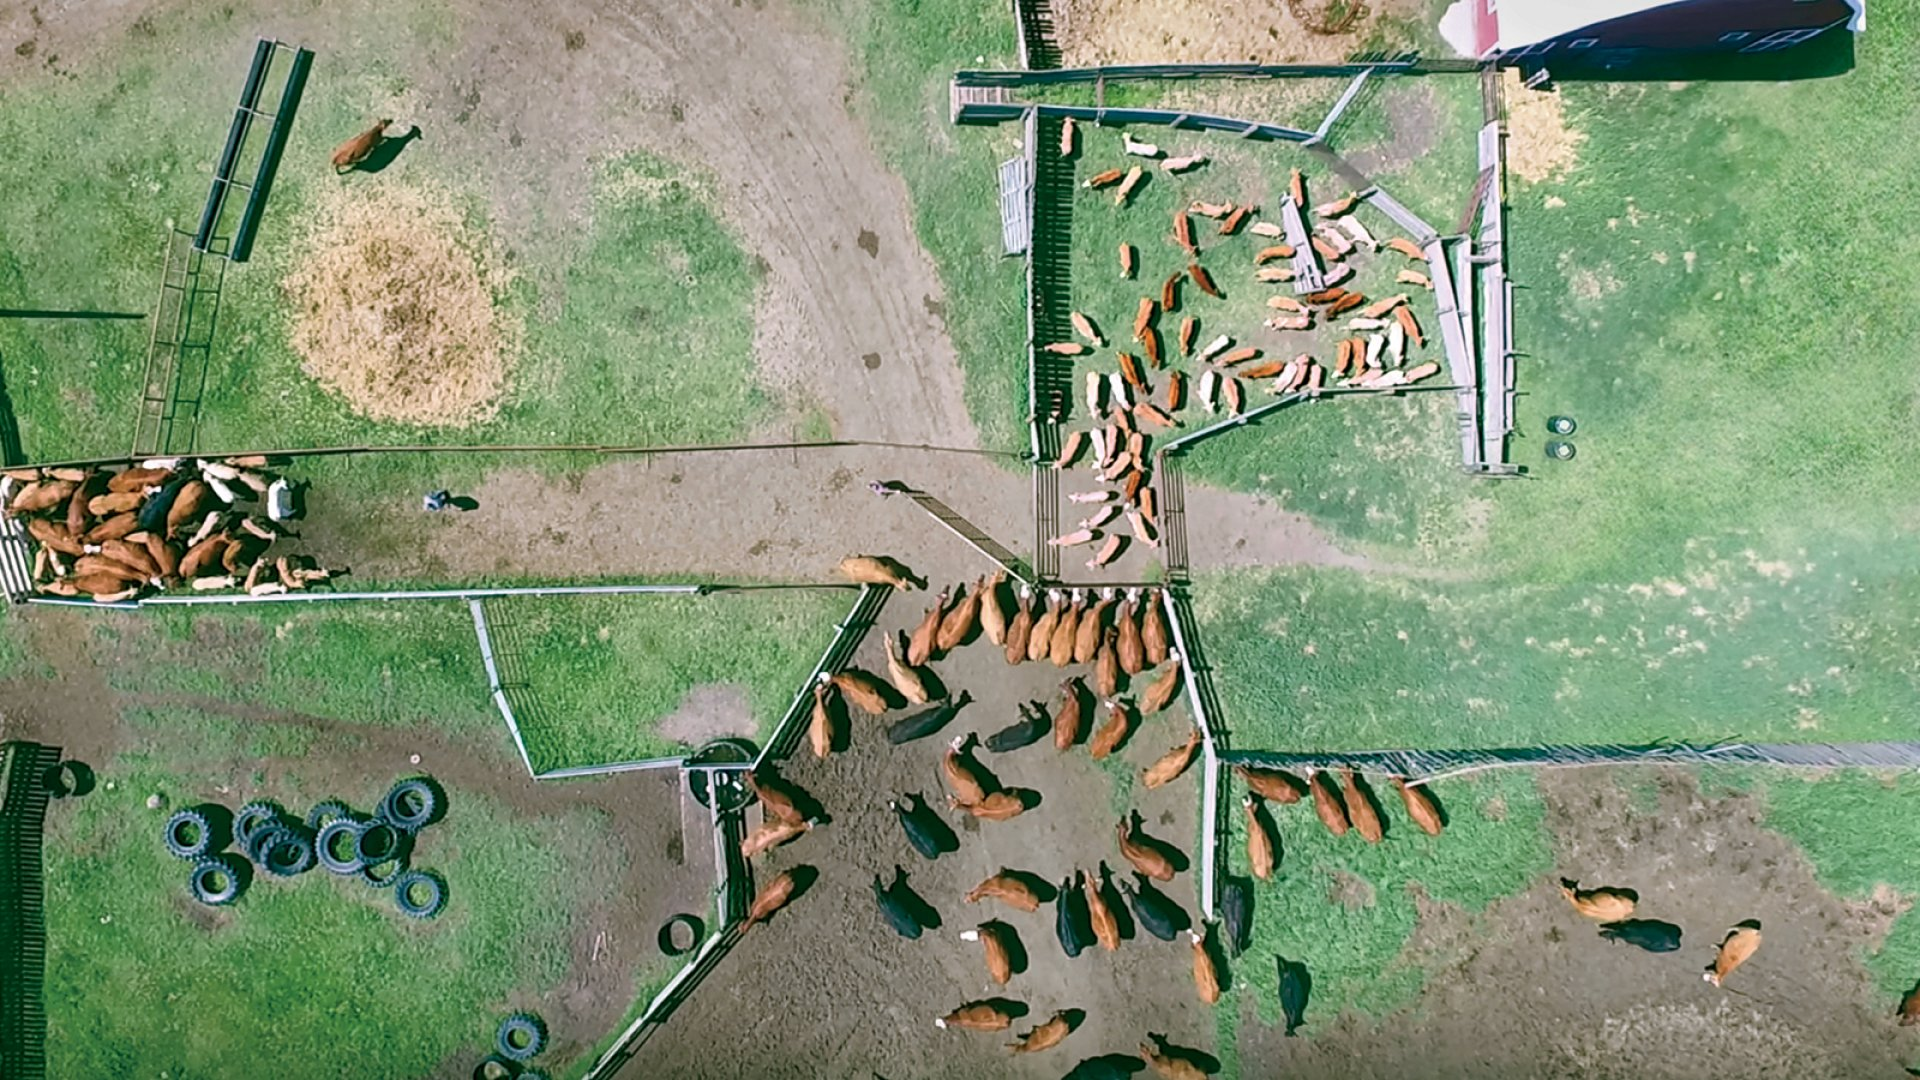 A Canadian cattle farm, as seen from a drone owned by Veterinary Agri-Heath Services' Cody Creelman.